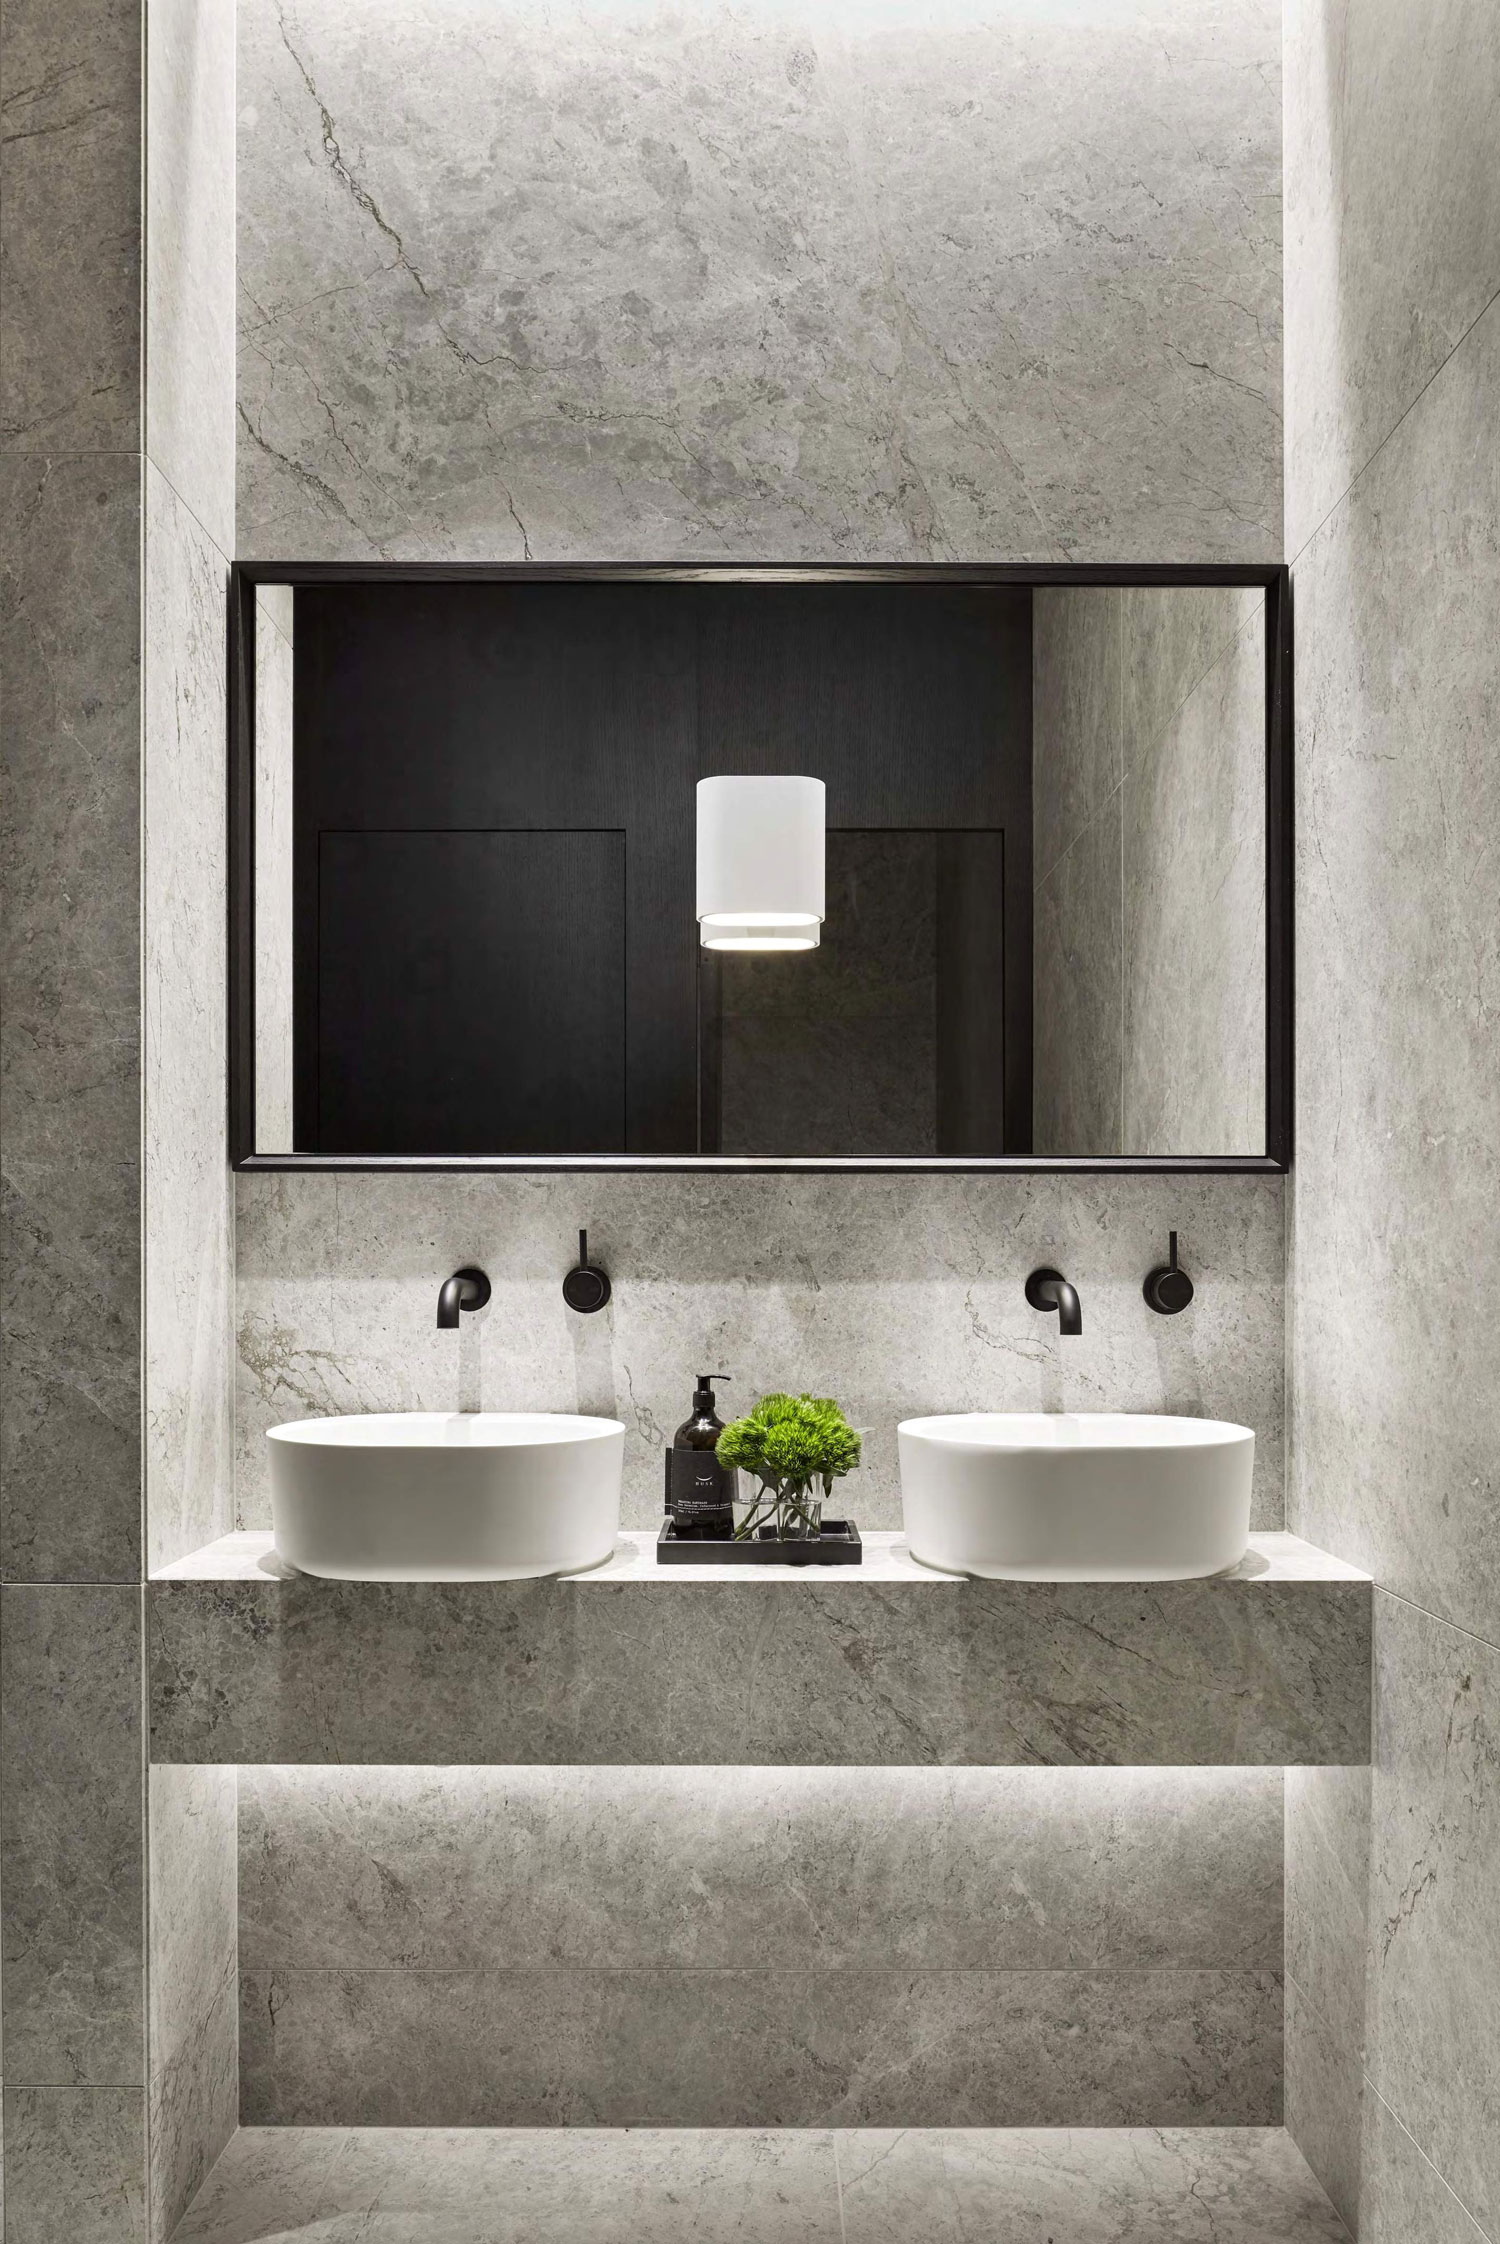 Pdg melbourne head office by studio tate yellowtrace for Small washrooms designs